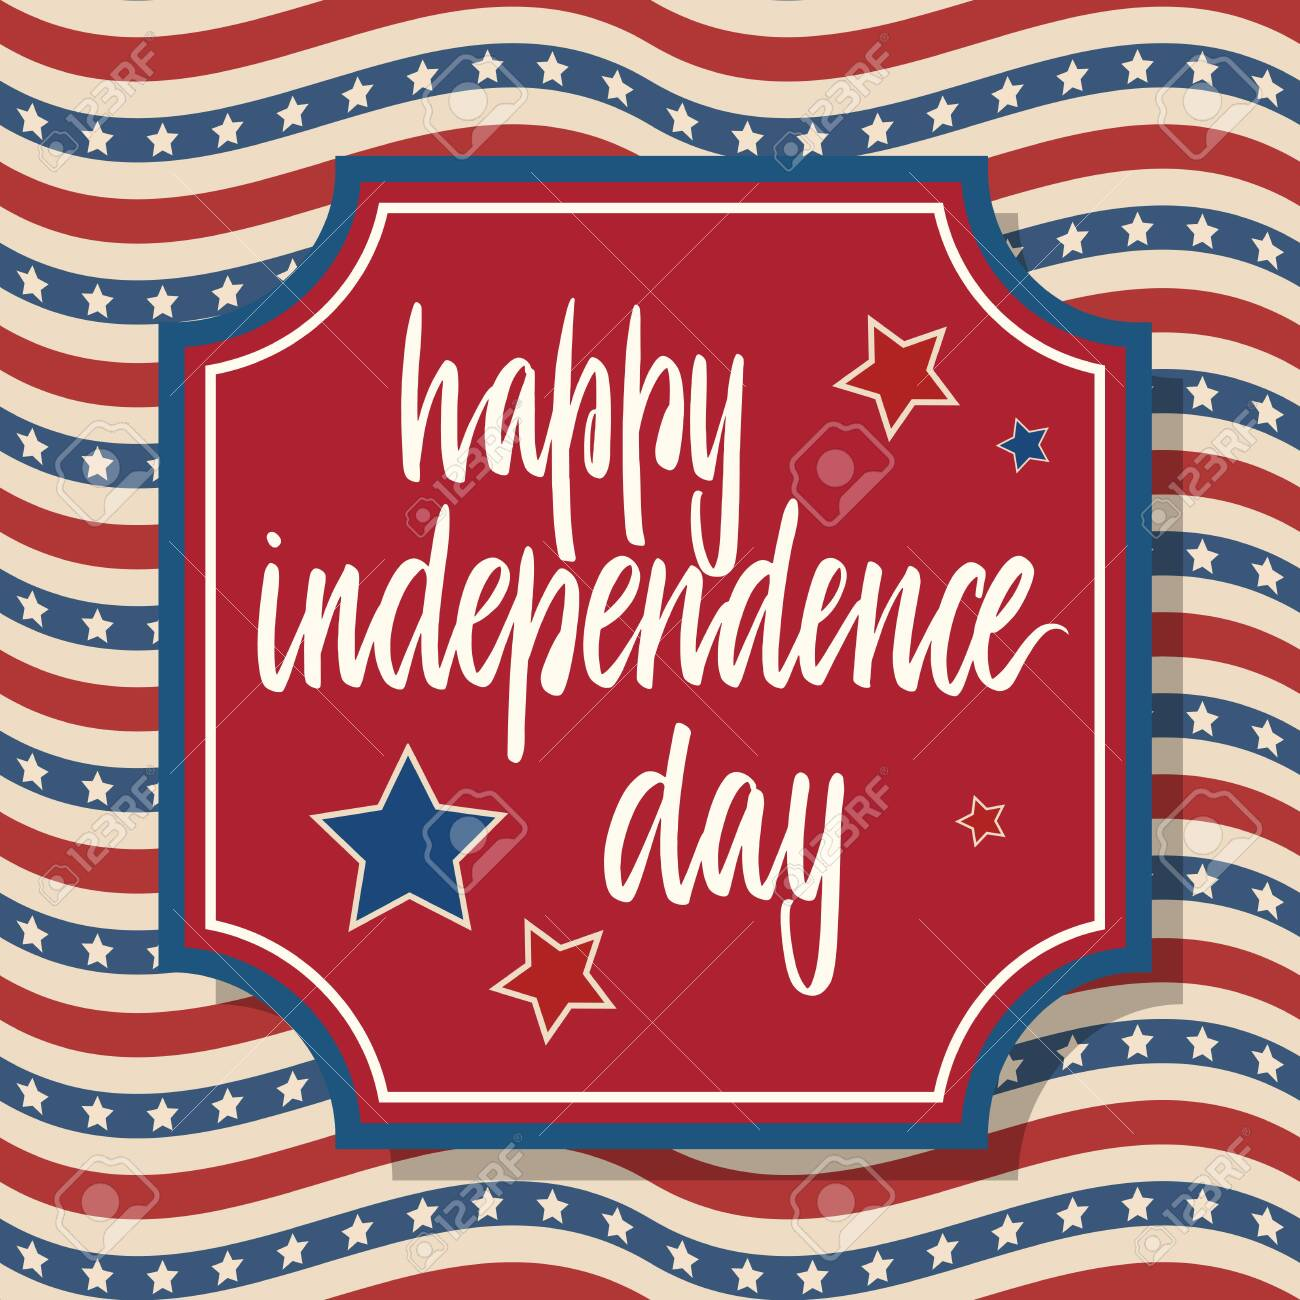 United States Independence Day greeting card. American patriotic design. Hand drawn lettering over red frame and traditional stars and stripes background. - 121827562